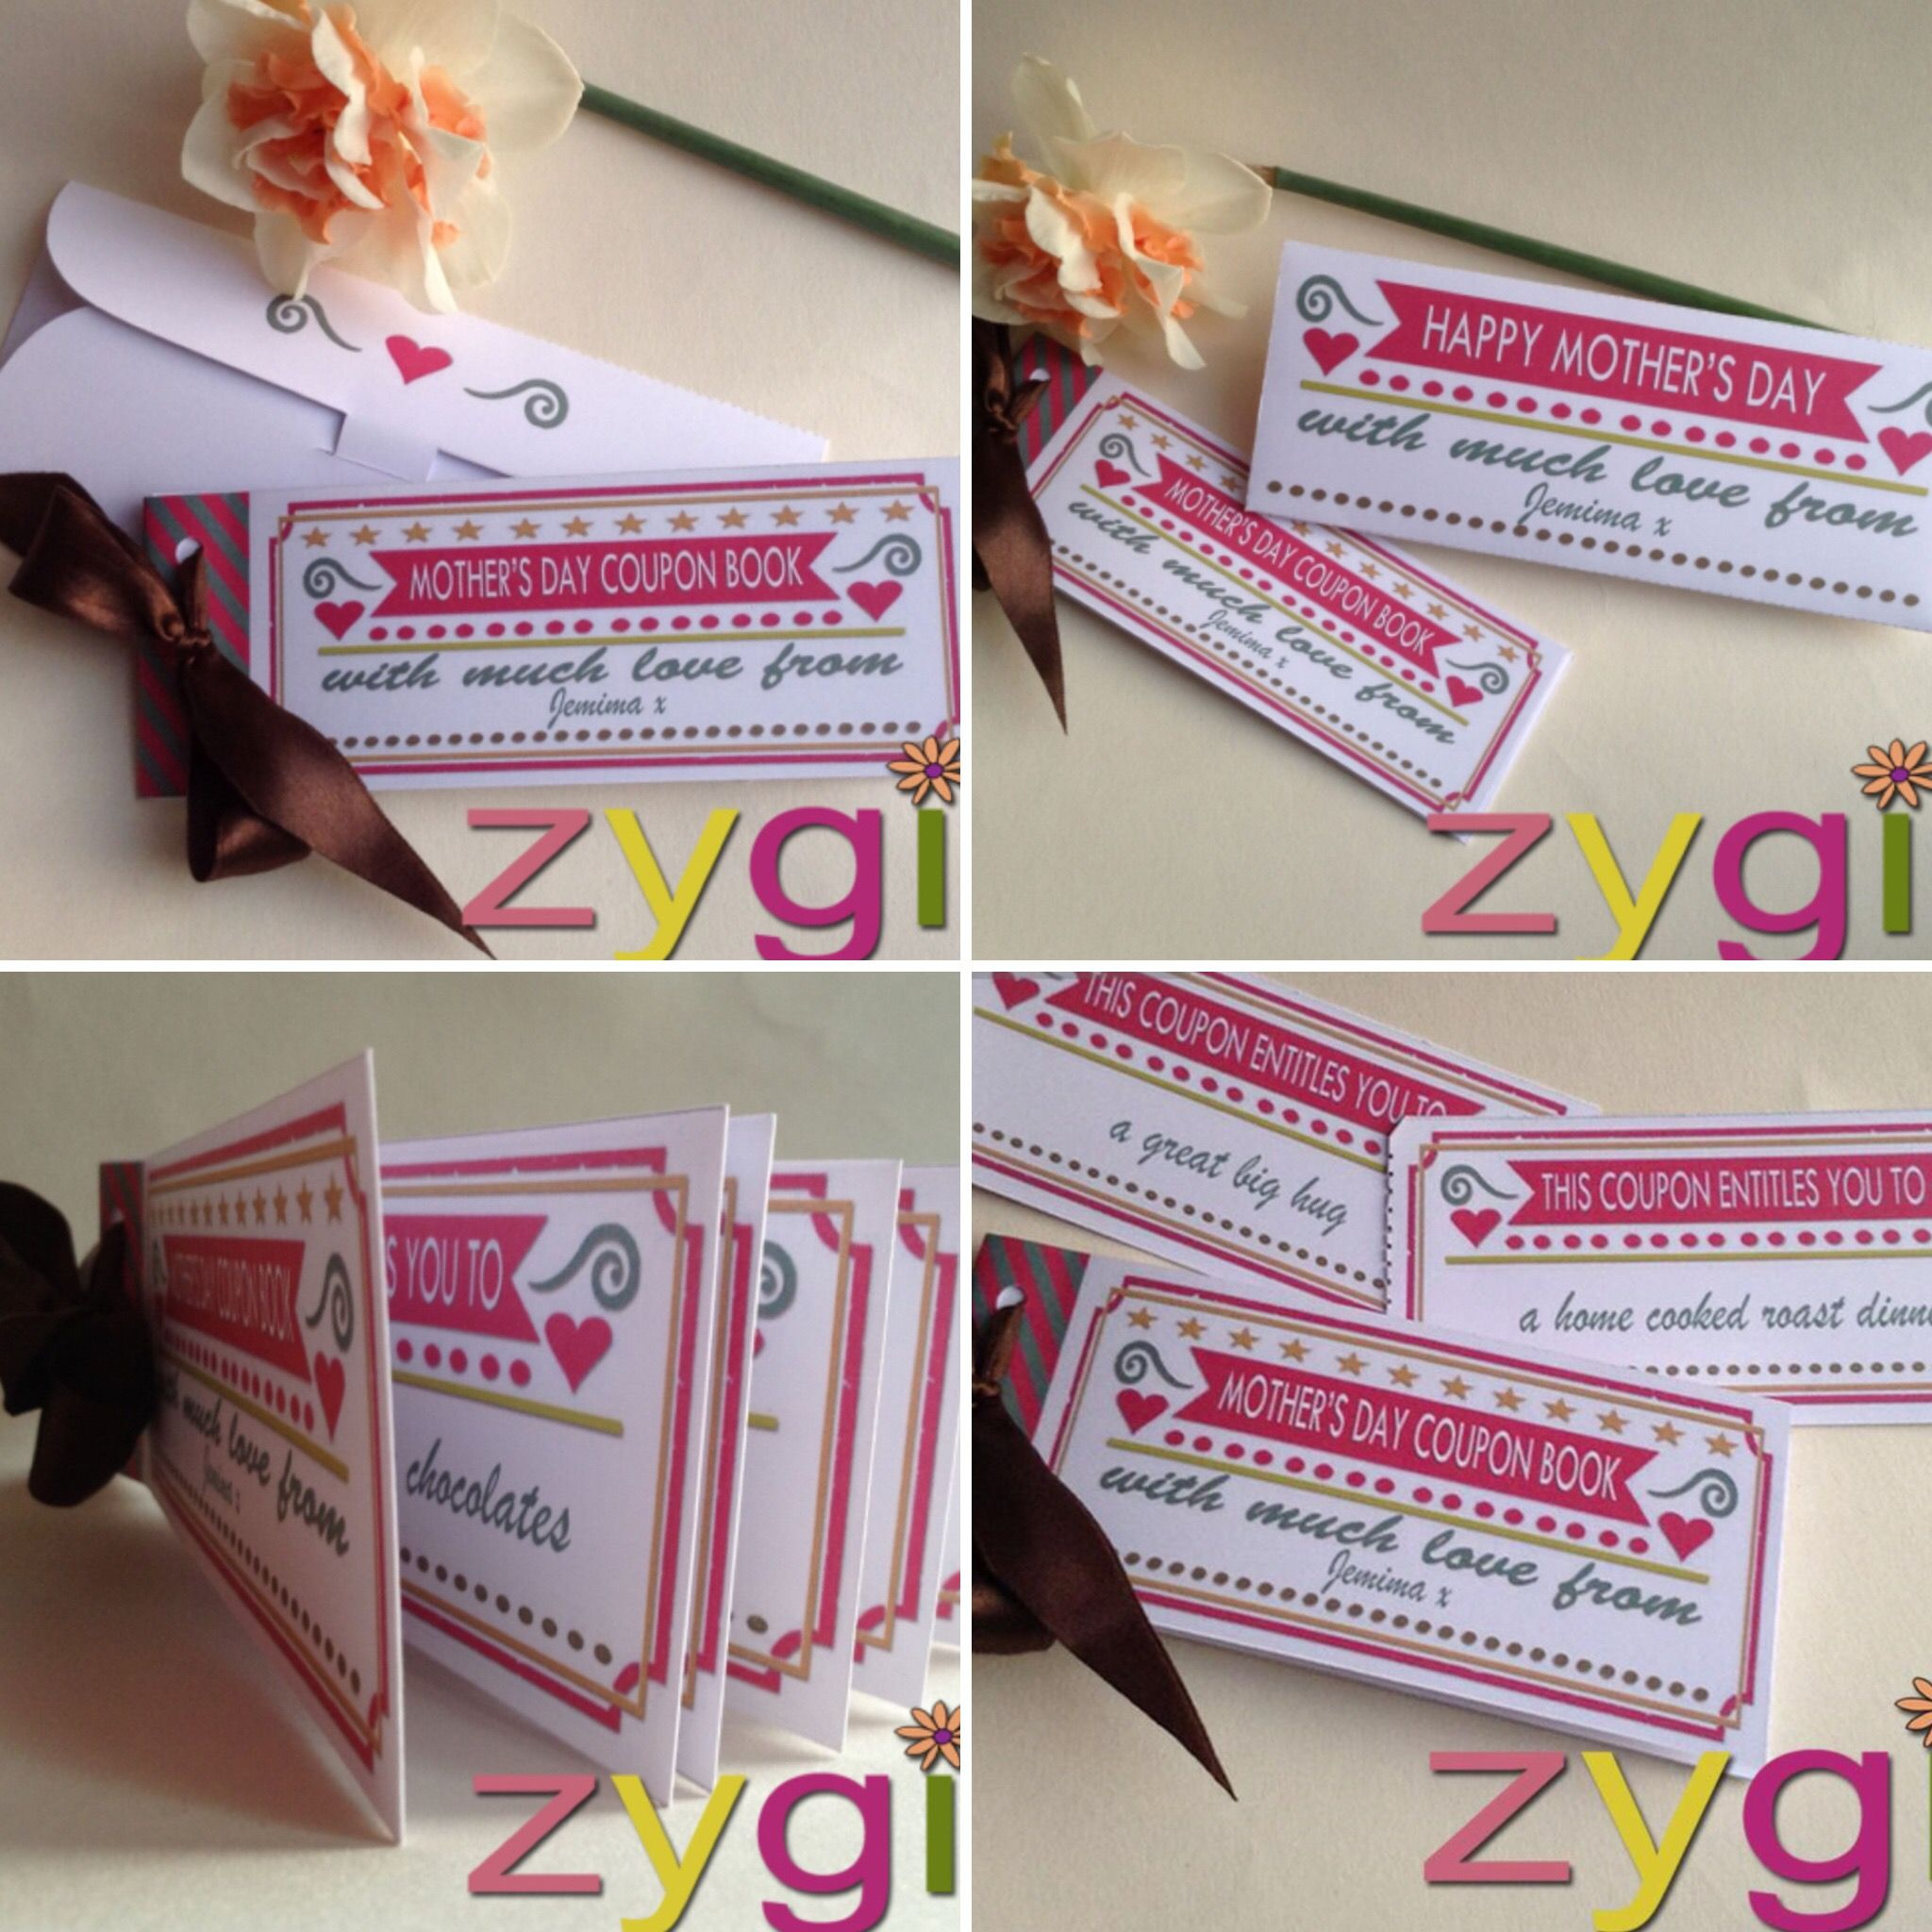 voucher book printable and editable  mother's day coupons